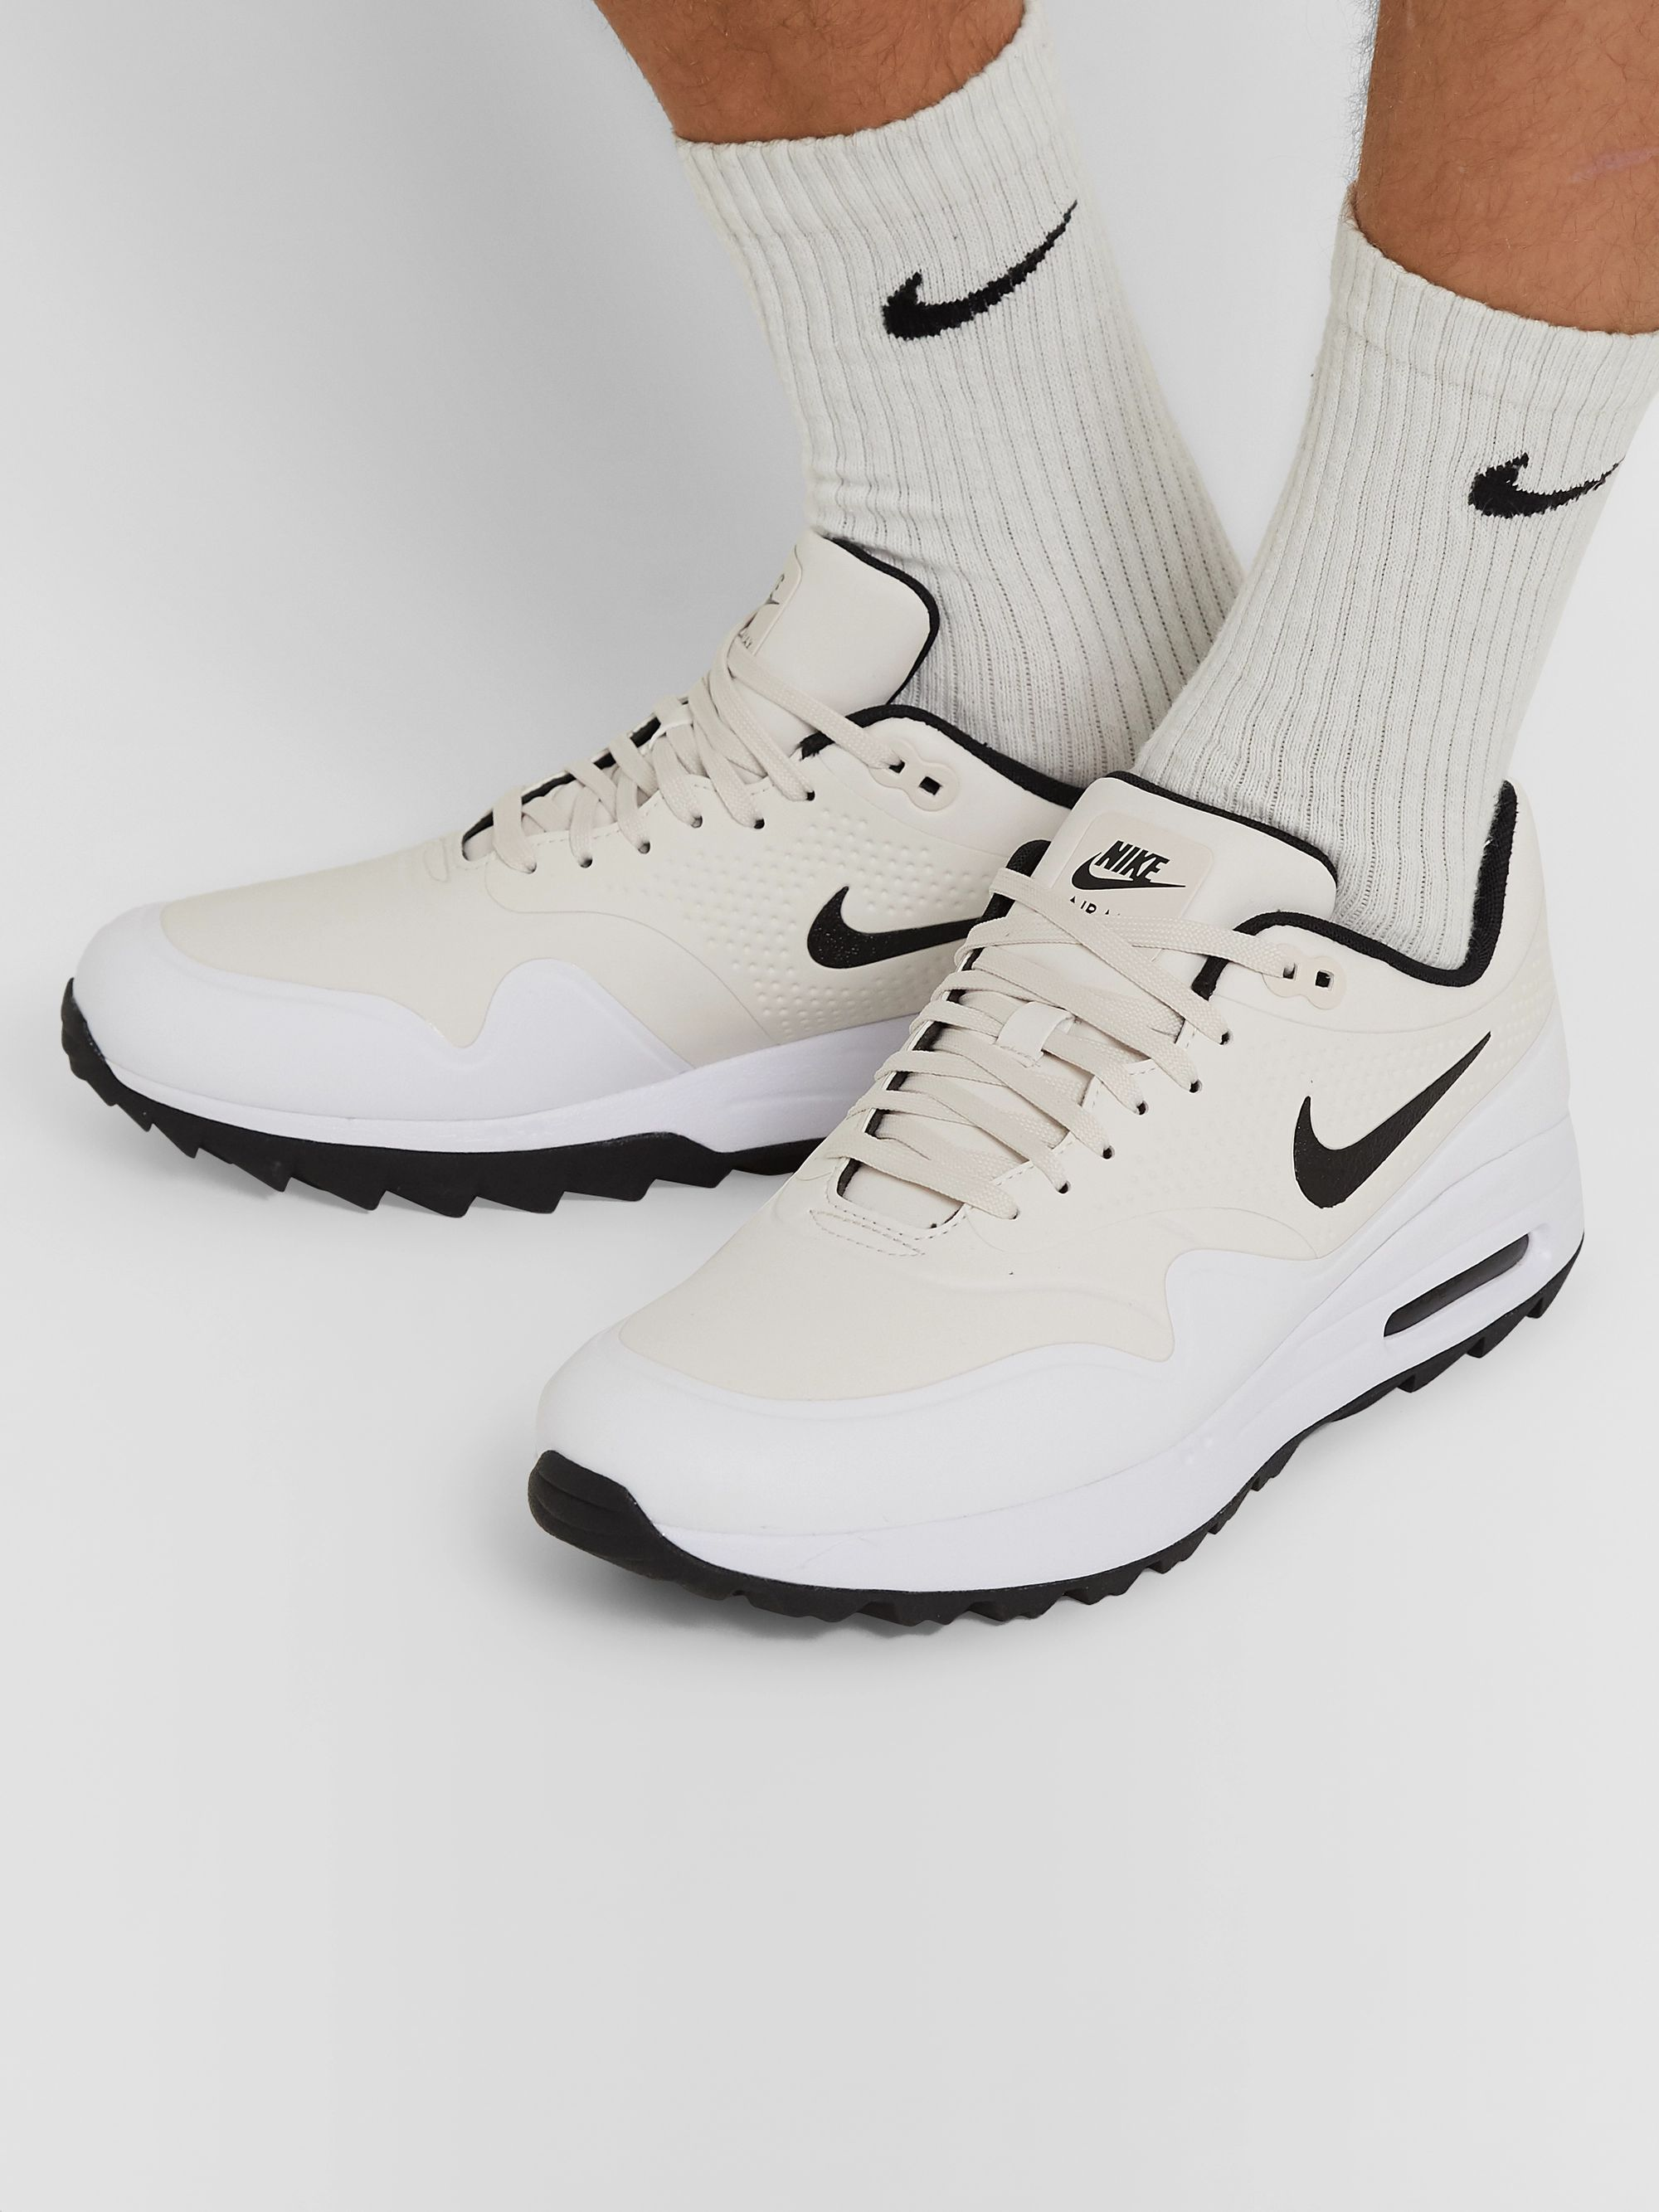 Nike Air Max 1 G Golf Shoes WhiteBlack